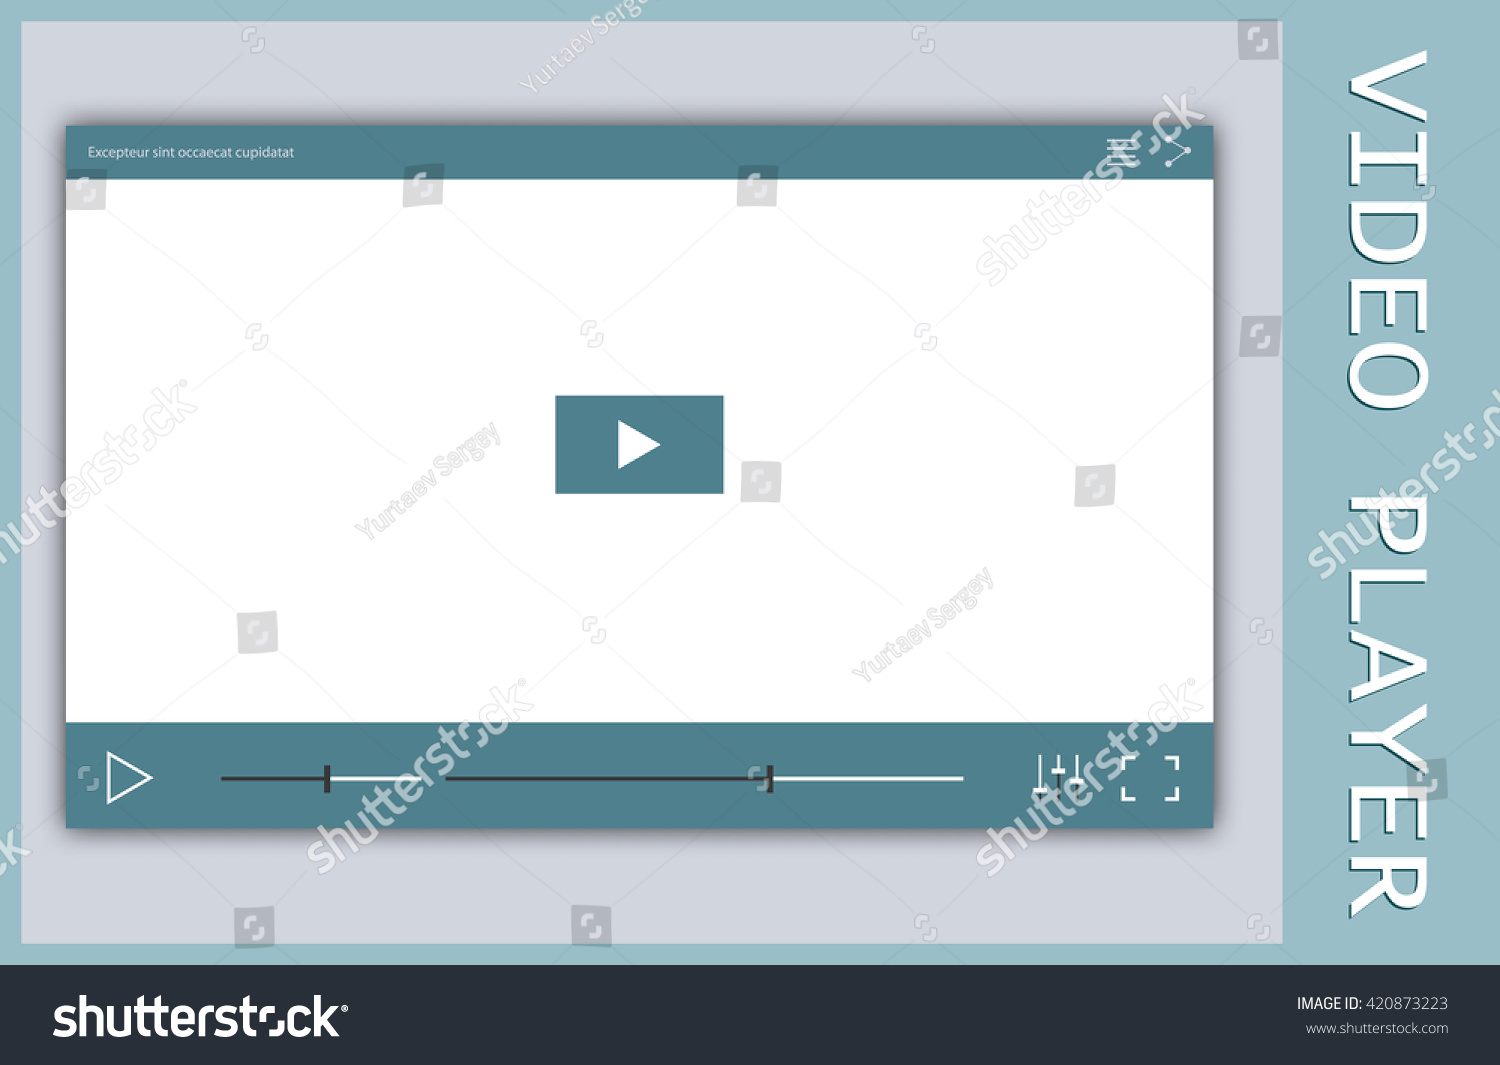 Video Player Frame Video Player Mockup Stock-Vektorgrafik 420873223 ...